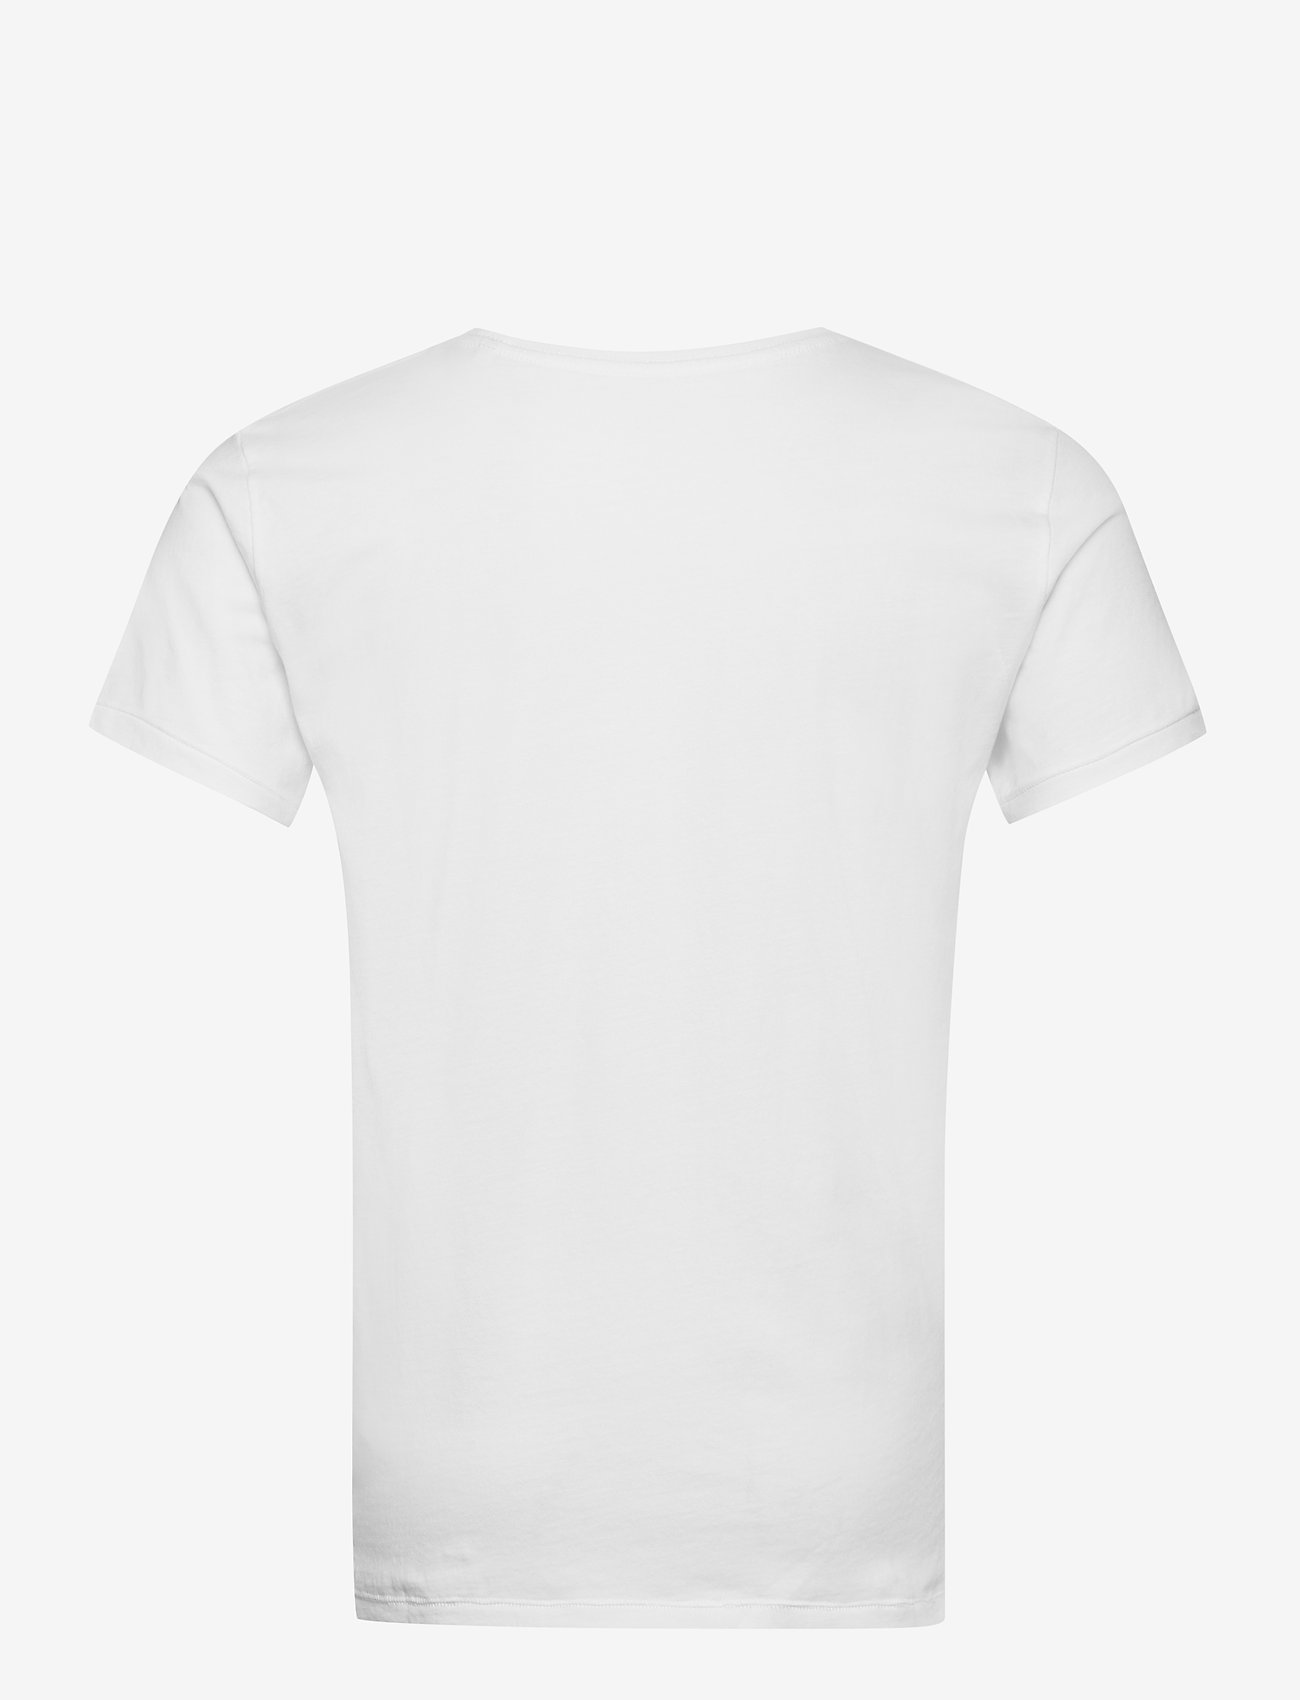 Knowledge Cotton Apparel - ALDER 5 pack basic tee - flat packe - basic t-shirts - bright white - 12